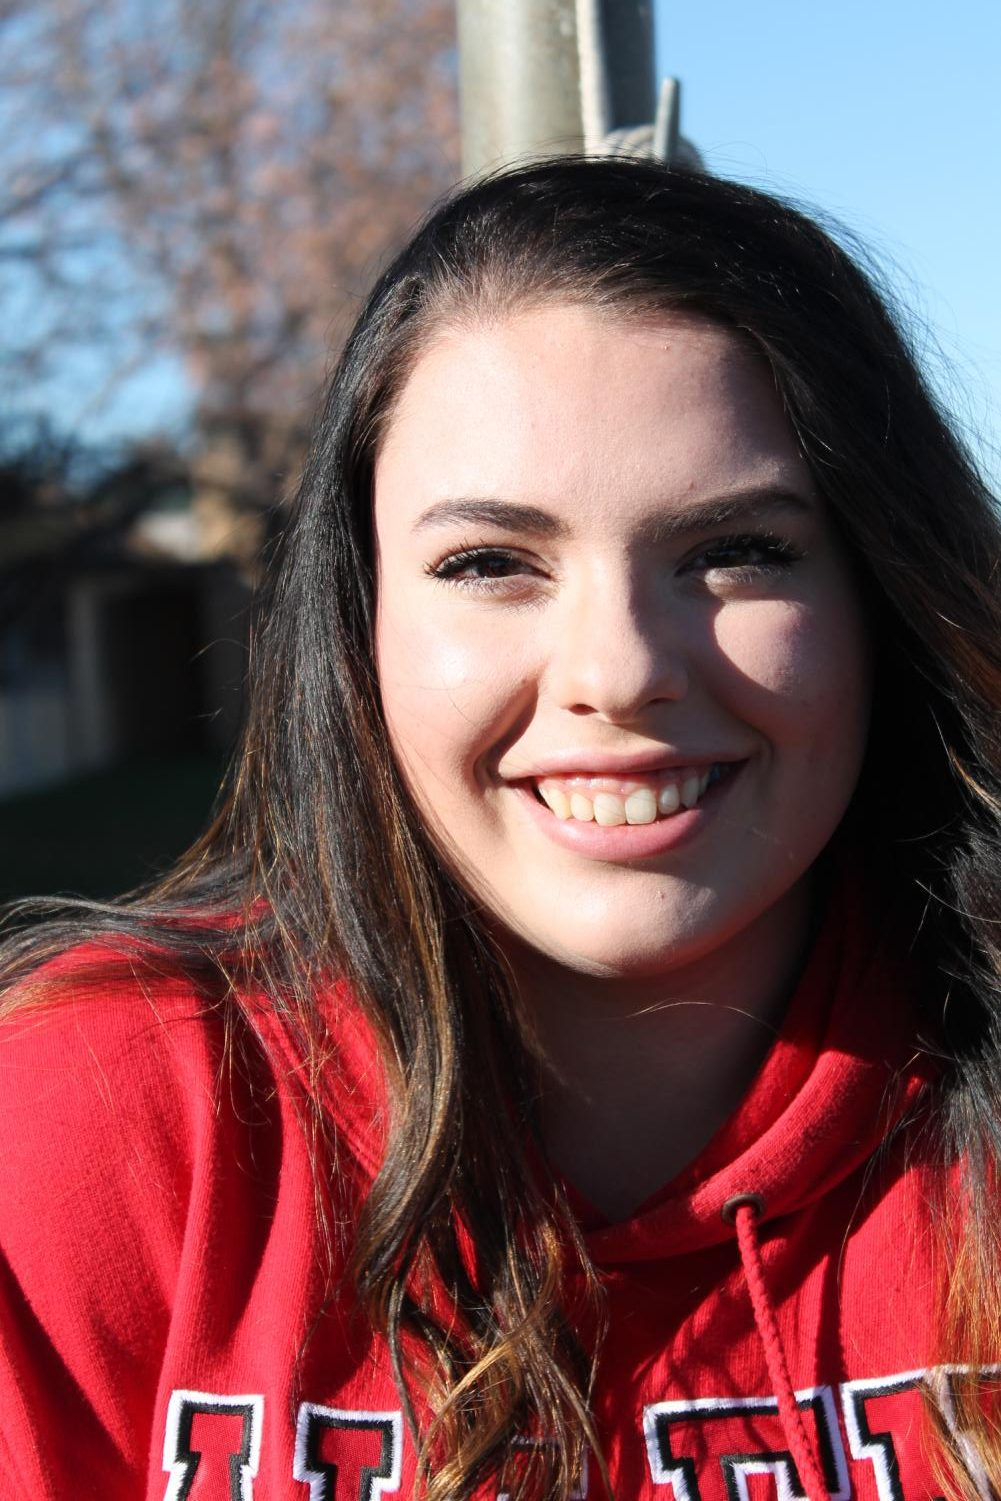 Freshman Lindsey Temaat shares her opinion on the current women's healthcare policy.